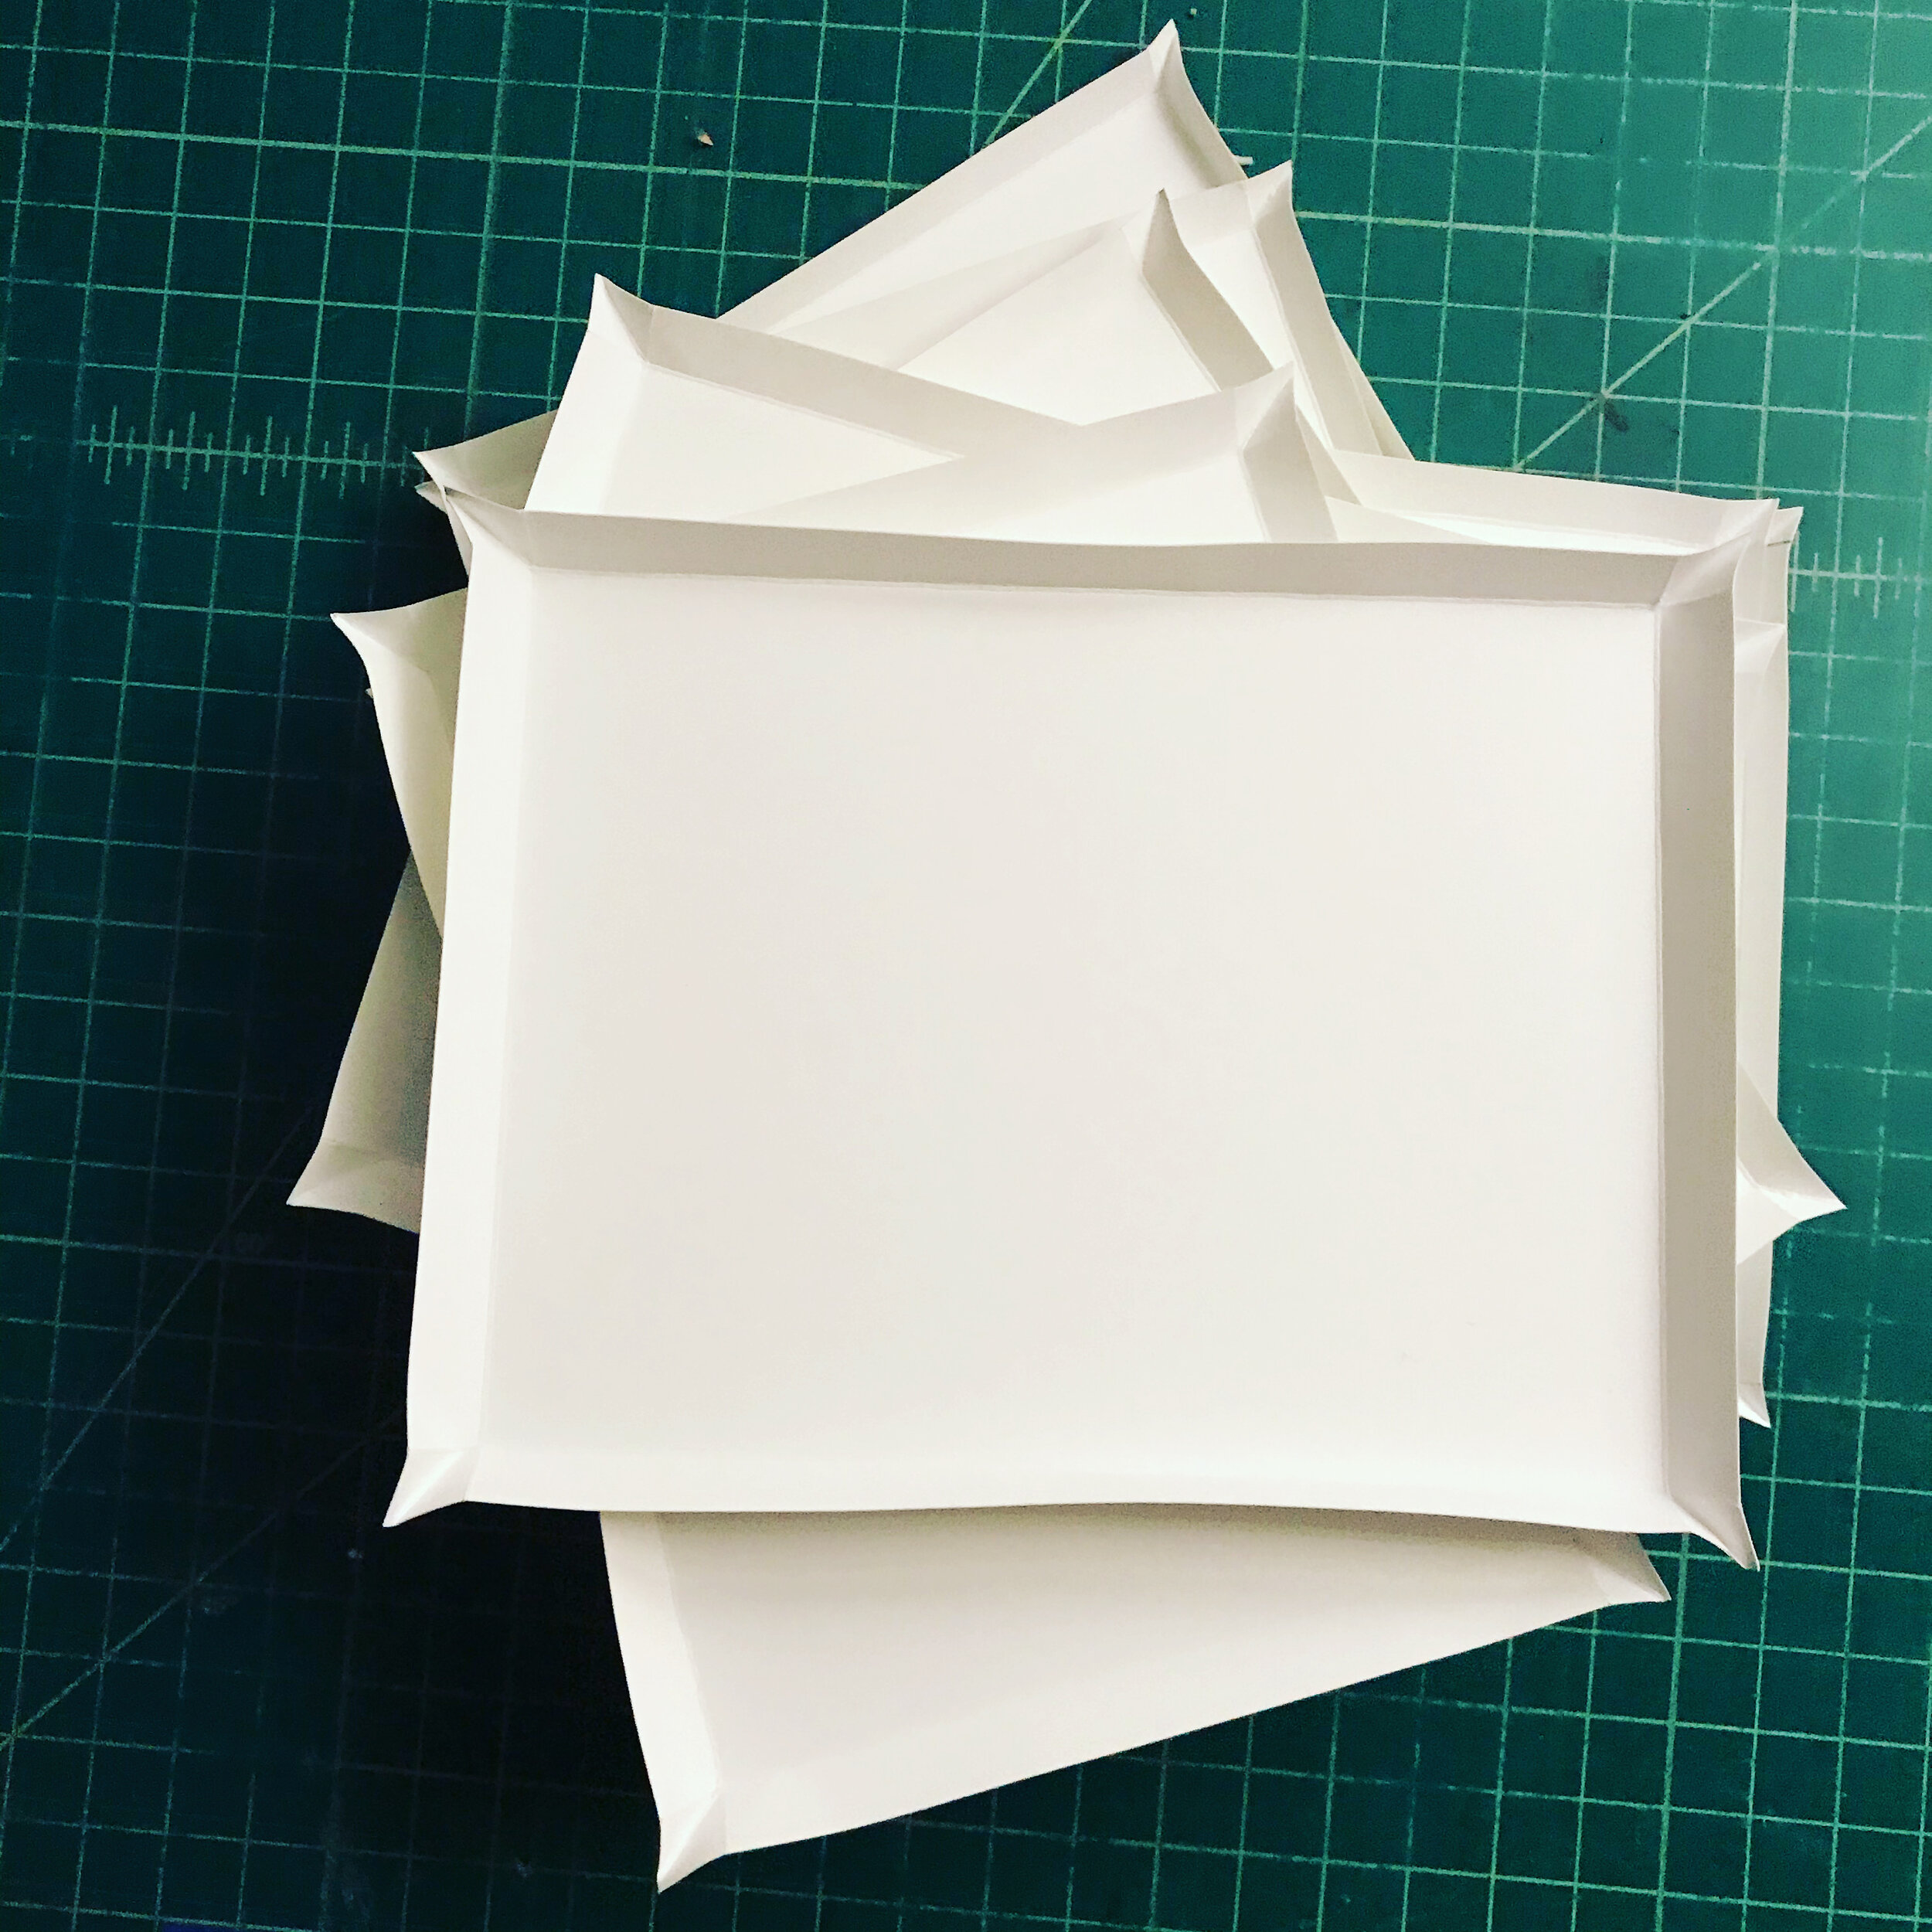 Scored and folded paper